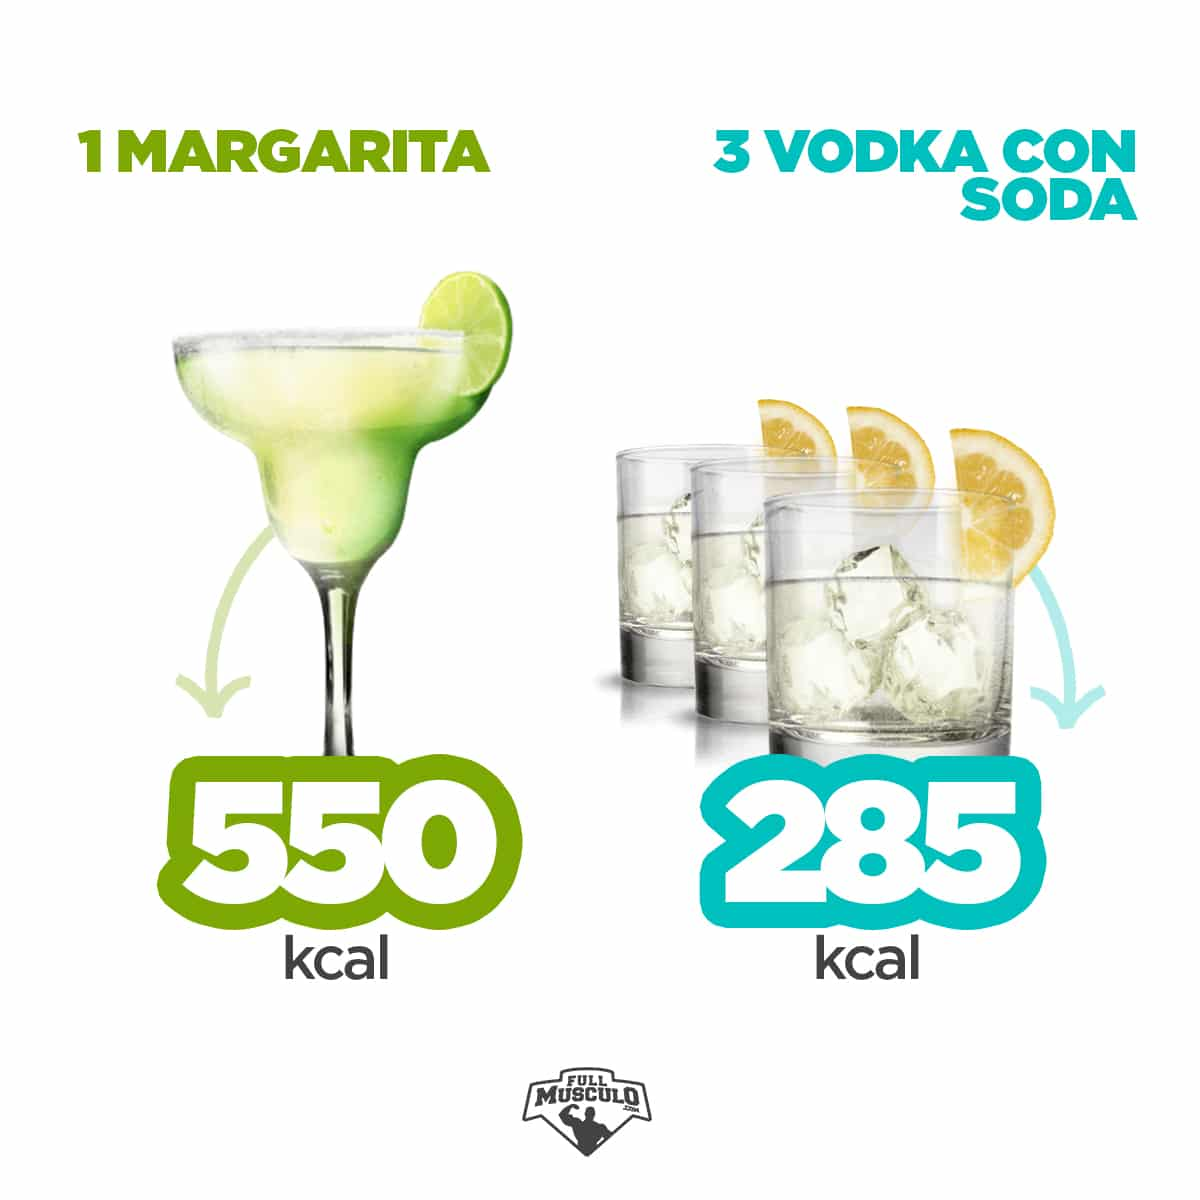 margarita vs vodka alcohol y calorias